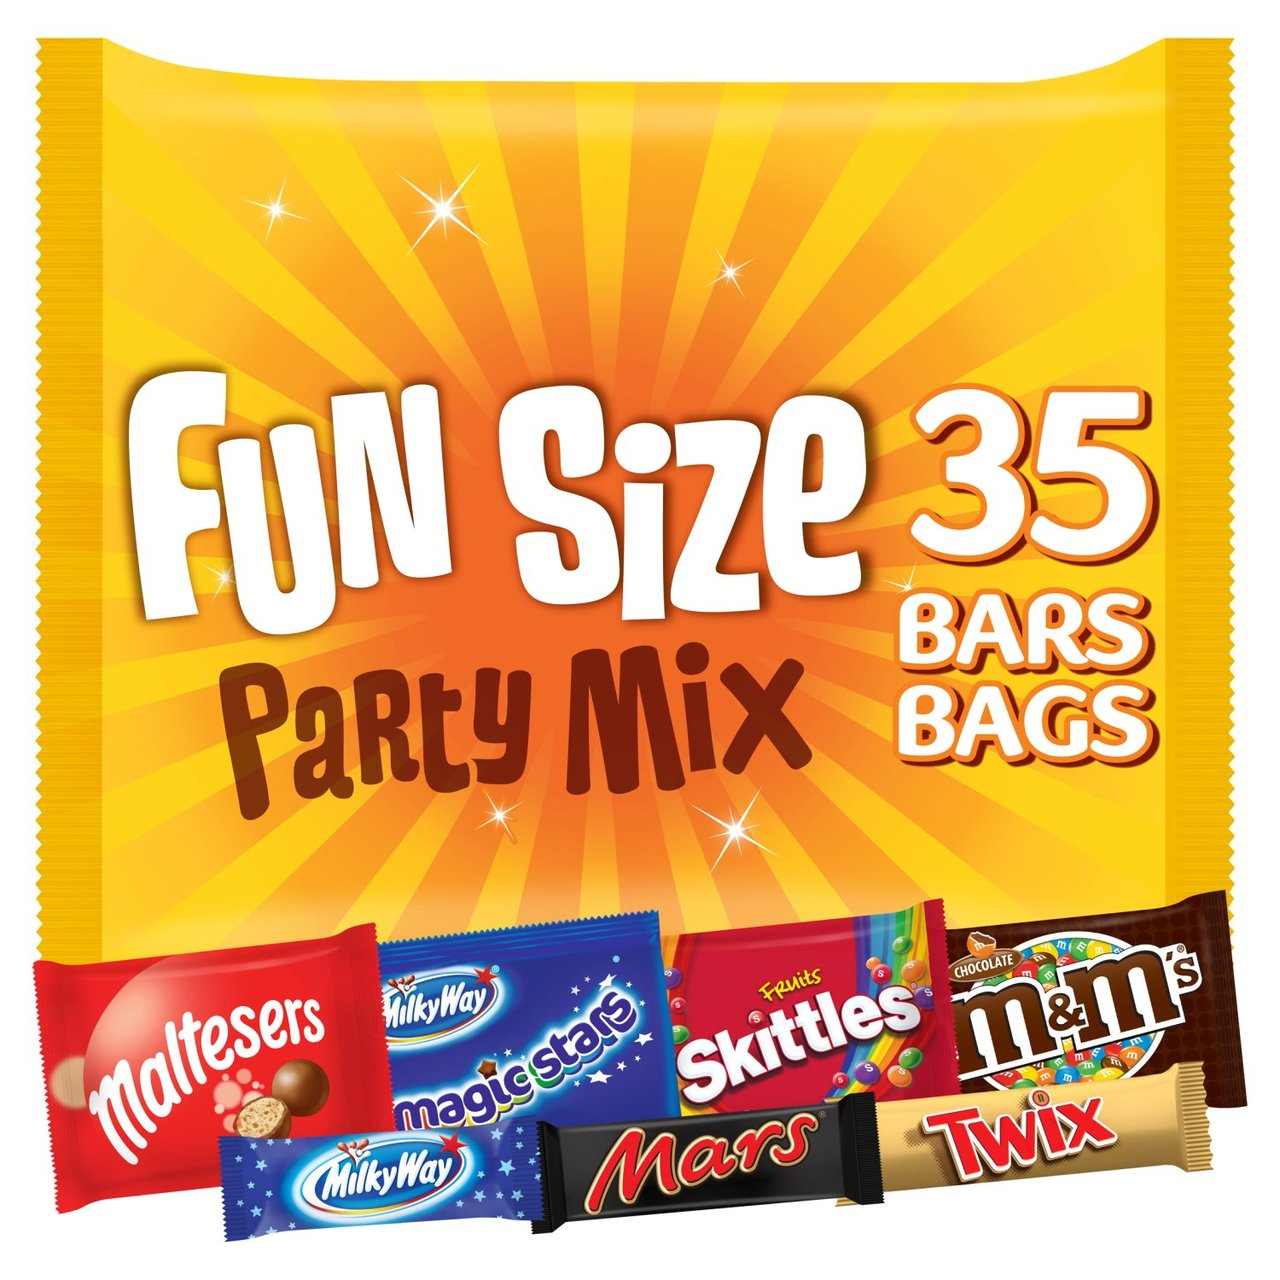 Best Before 19/07/2020 M&M's Funsize Party Mix 35 Bars Bags